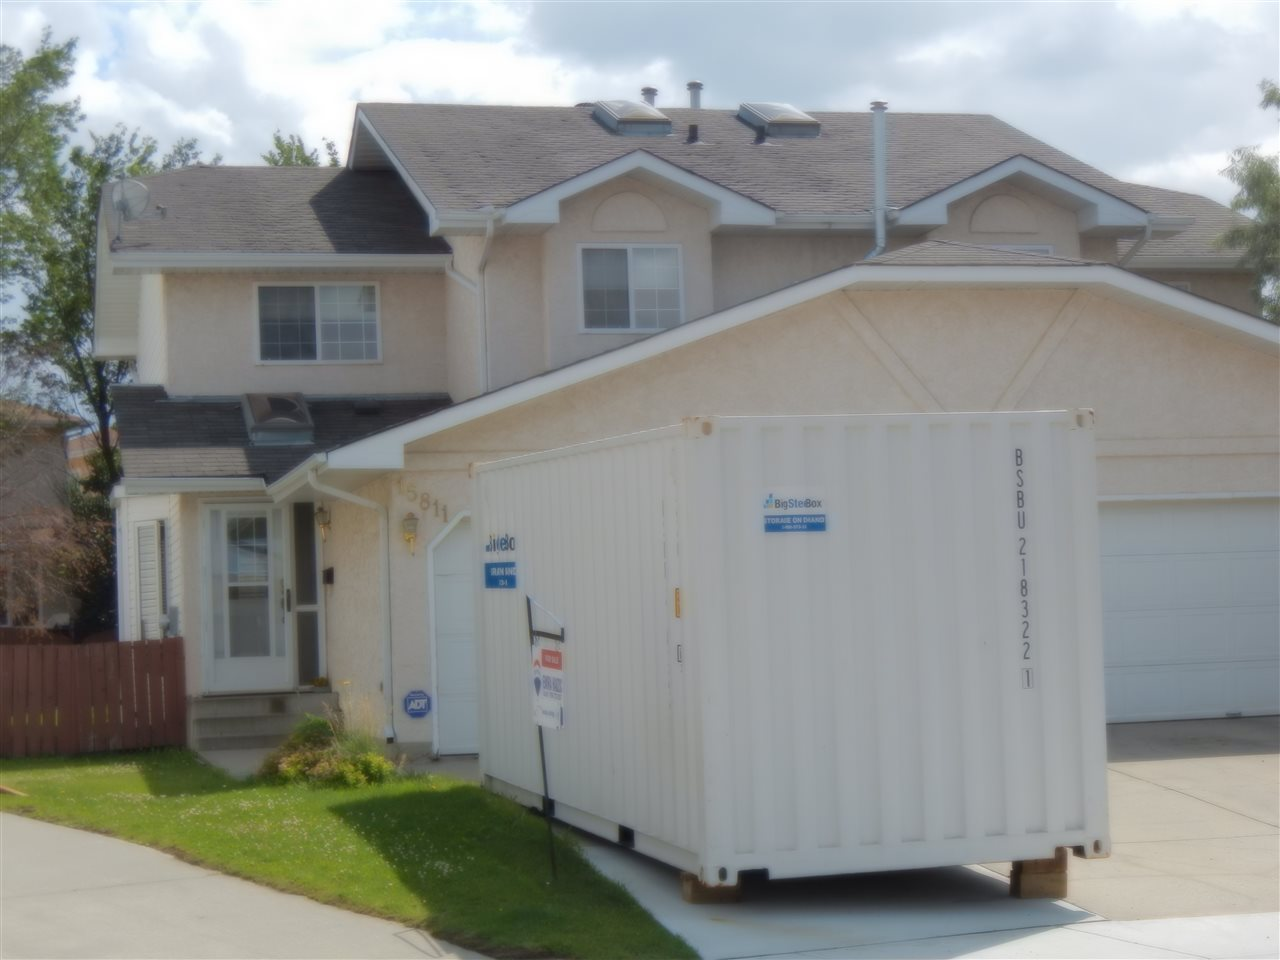 NO CONDO FEES / HALF DUPLEX......DOUBLE ATTACHED CAR GARAGE!!! This is a great affordable starter home in a charming community of Ozerna. This half duplex offers 3 generously sized bedrooms, a partly finished basement. The main floor of this beautiful home features a spacious kitchen with a stainless steel appliances, loads of cabinets and an island. On the mail floor is a 2 piece washroom, an open concept living room with a corner gas fireplace, bay window, Hardwood floor and a dining room. The upper floor of this gorgeous home features a large master bedroom with walk-in closet and 3 pc bath and 2 other big bedrooms  and a 4 piece bathroom. The partly finished basement features a large family room, laundry room and office/den. At the back of the house is the massive back yard, fully fenced with deck access from the kitchen/dinning door. Great location, close to playground , Anthony Henday and many shopping outlets